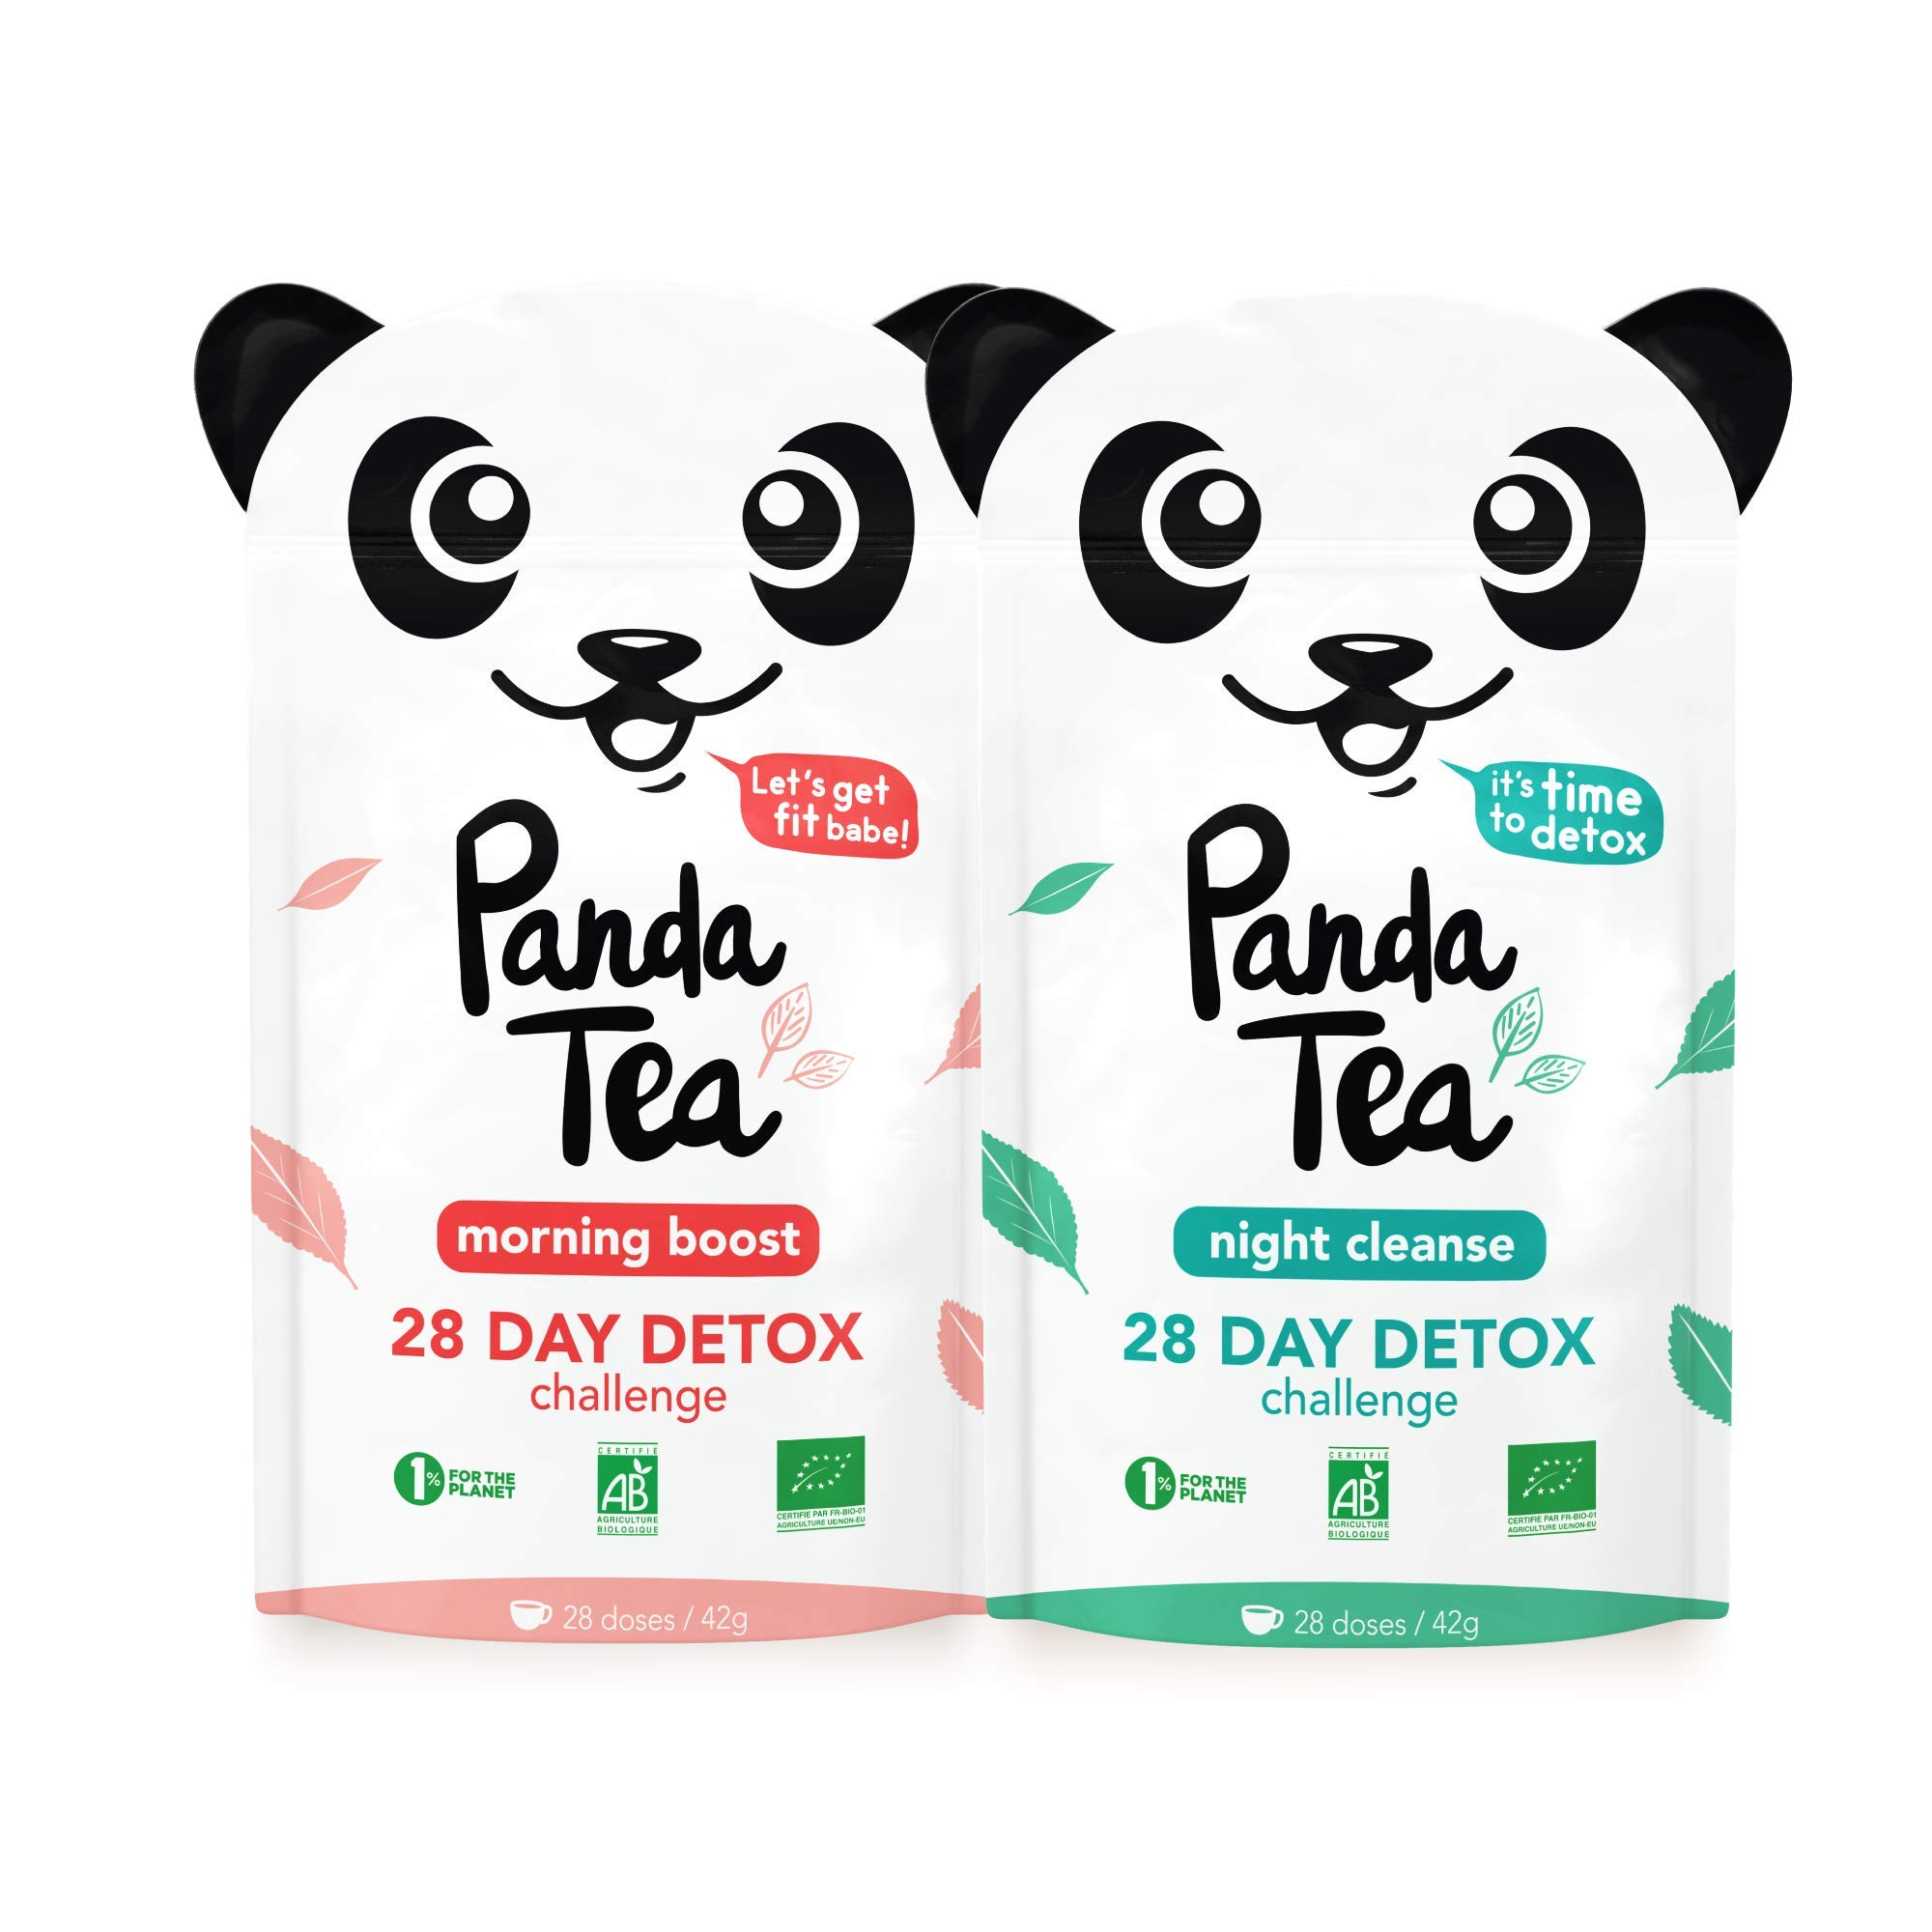 Panda Tea - Organic Cleanse Tea - Detox Tea - Slim Fit - 56 Tea Bags - 28-Day Slimming Detox - Weight Loss by Panda Tea